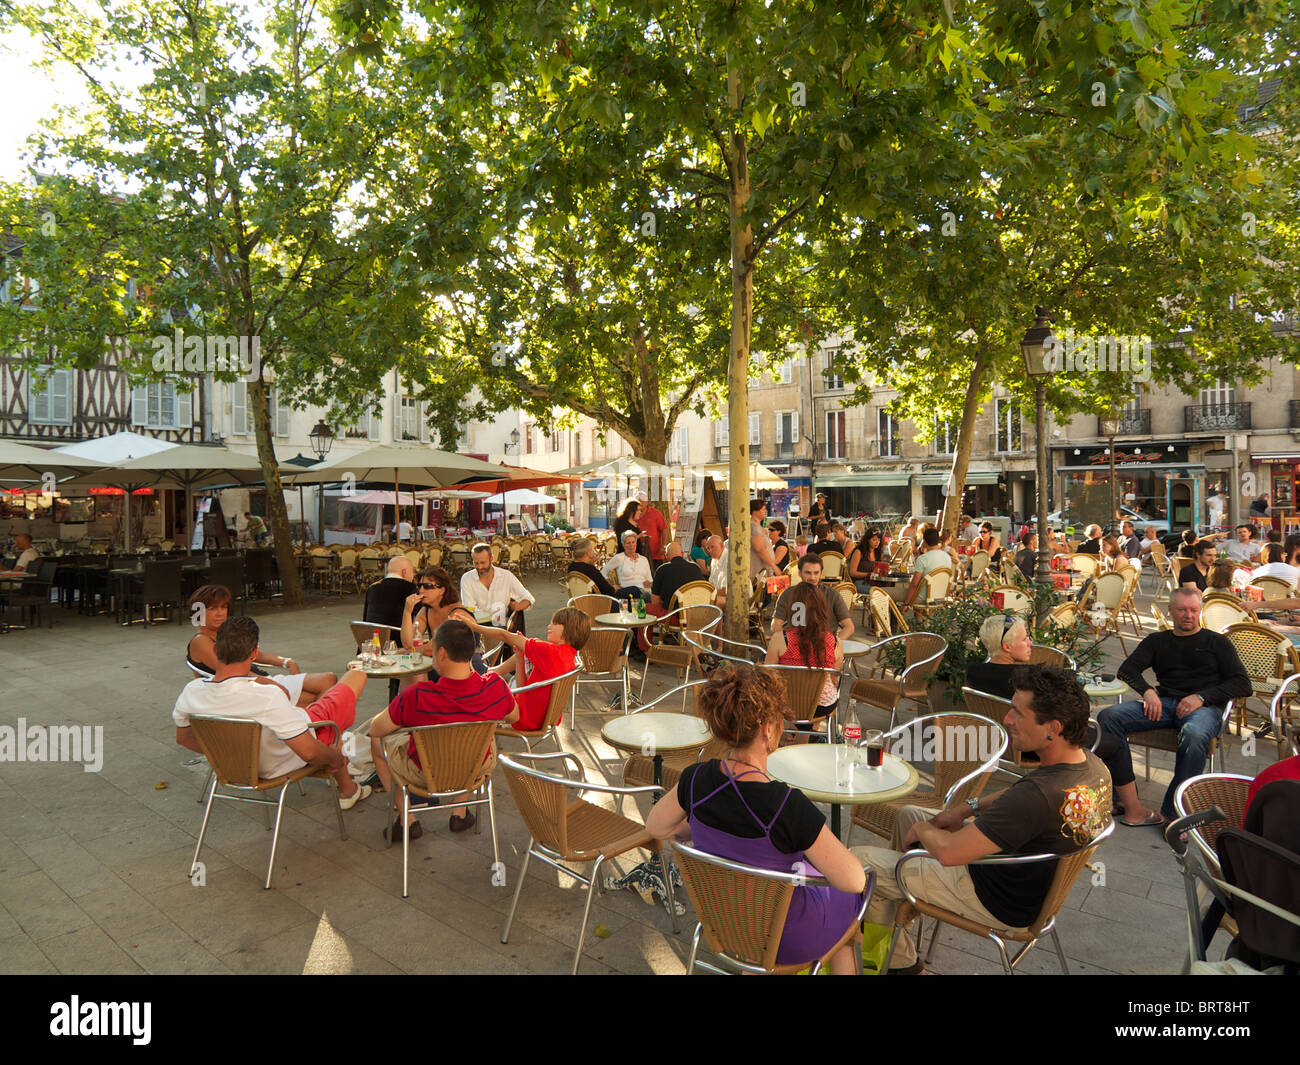 Place Emile Zola is a nice shady square lined with restaurants and cafes, Dijon, Burgundy, France Stock Photo